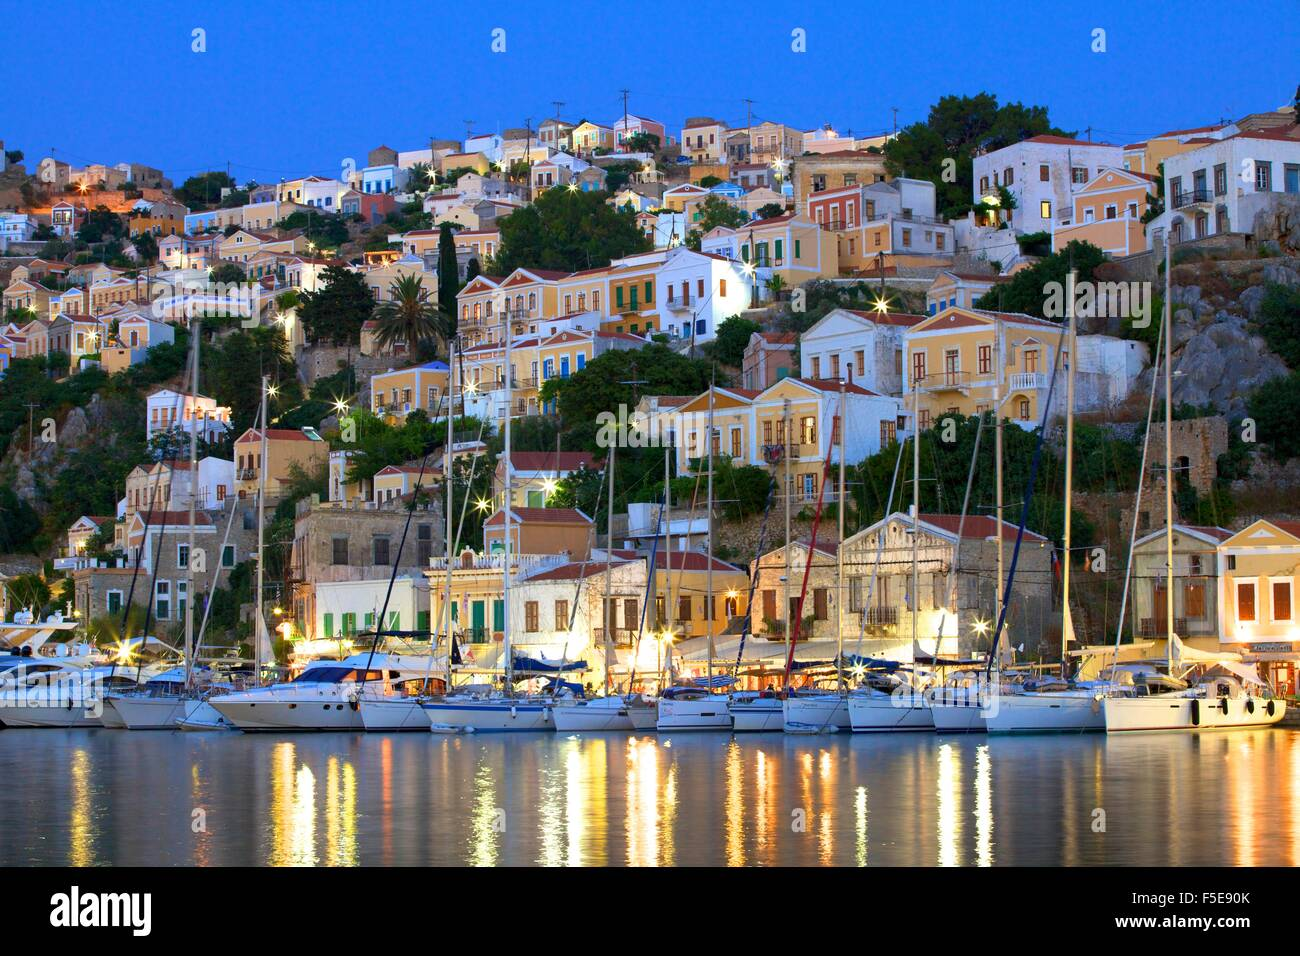 Le port de Symi, Symi, Dodécanèse, îles grecques, Grèce, Europe Photo Stock